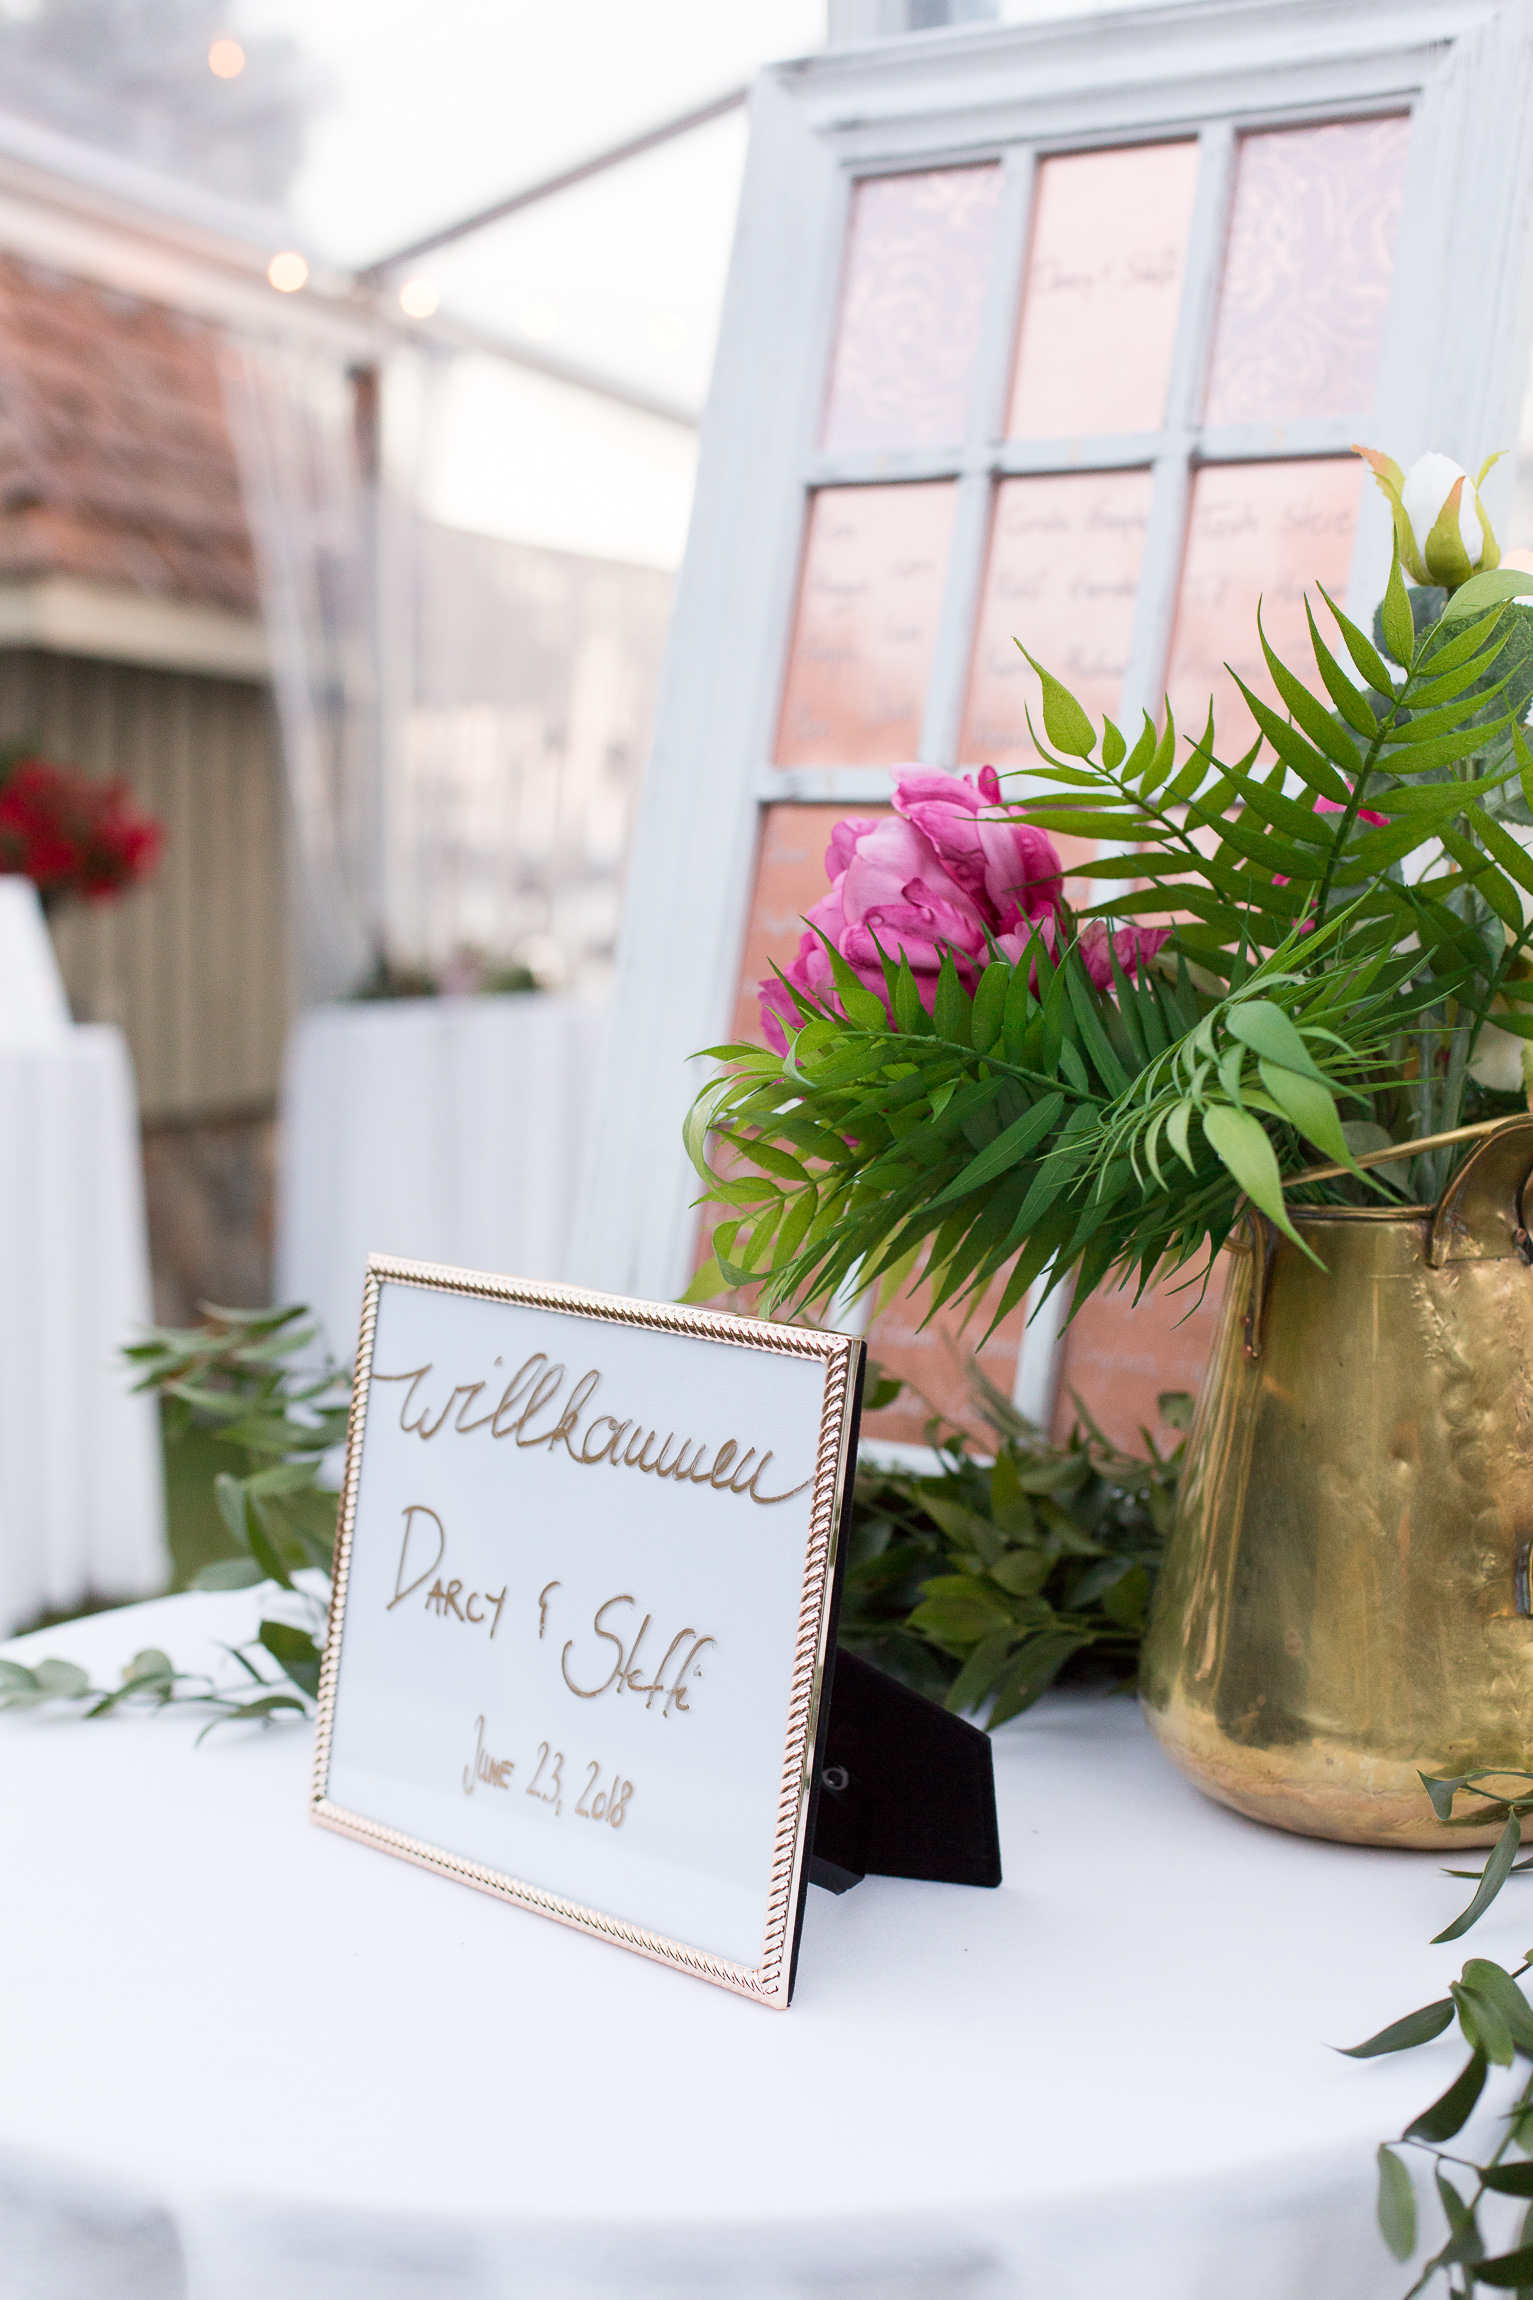 welcome-sign-darcy-steffi-wedding.jpg